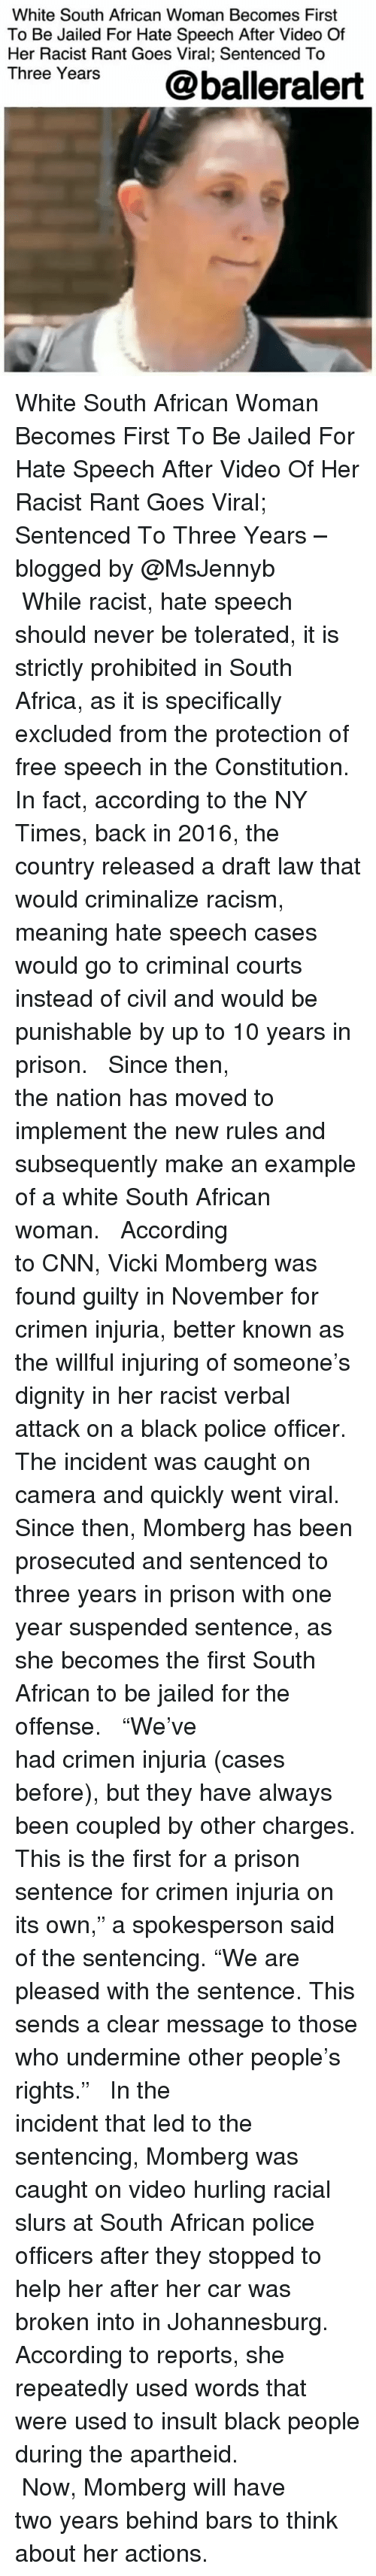 "caught on camera: White South African Woman Becomes First  To Be Jailed For Hate Speech After Video Of  Her Racist Rant Goes Viral; Sentenced To  Three Years  @balleralert White South African Woman Becomes First To Be Jailed For Hate Speech After Video Of Her Racist Rant Goes Viral; Sentenced To Three Years – blogged by @MsJennyb ⠀⠀⠀⠀⠀⠀⠀⠀⠀ ⠀⠀⠀⠀⠀⠀⠀⠀⠀ While racist, hate speech should never be tolerated, it is strictly prohibited in South Africa, as it is specifically excluded from the protection of free speech in the Constitution. In fact, according to the NY Times, back in 2016, the country released a draft law that would criminalize racism, meaning hate speech cases would go to criminal courts instead of civil and would be punishable by up to 10 years in prison. ⠀⠀⠀⠀⠀⠀⠀⠀⠀ ⠀⠀⠀⠀⠀⠀⠀⠀⠀ Since then, the nation has moved to implement the new rules and subsequently make an example of a white South African woman. ⠀⠀⠀⠀⠀⠀⠀⠀⠀ ⠀⠀⠀⠀⠀⠀⠀⠀⠀ According to CNN, Vicki Momberg was found guilty in November for crimen injuria, better known as the willful injuring of someone's dignity in her racist verbal attack on a black police officer. The incident was caught on camera and quickly went viral. Since then, Momberg has been prosecuted and sentenced to three years in prison with one year suspended sentence, as she becomes the first South African to be jailed for the offense. ⠀⠀⠀⠀⠀⠀⠀⠀⠀ ⠀⠀⠀⠀⠀⠀⠀⠀⠀ ""We've had crimen injuria (cases before), but they have always been coupled by other charges. This is the first for a prison sentence for crimen injuria on its own,"" a spokesperson said of the sentencing. ""We are pleased with the sentence. This sends a clear message to those who undermine other people's rights."" ⠀⠀⠀⠀⠀⠀⠀⠀⠀ ⠀⠀⠀⠀⠀⠀⠀⠀⠀ In the incident that led to the sentencing, Momberg was caught on video hurling racial slurs at South African police officers after they stopped to help her after her car was broken into in Johannesburg. According to reports, she repeatedly used words that were used to insult black people during the apartheid. ⠀⠀⠀⠀⠀⠀⠀⠀⠀ ⠀⠀⠀⠀⠀⠀⠀⠀⠀ Now, Momberg will have two years behind bars to think about her actions."